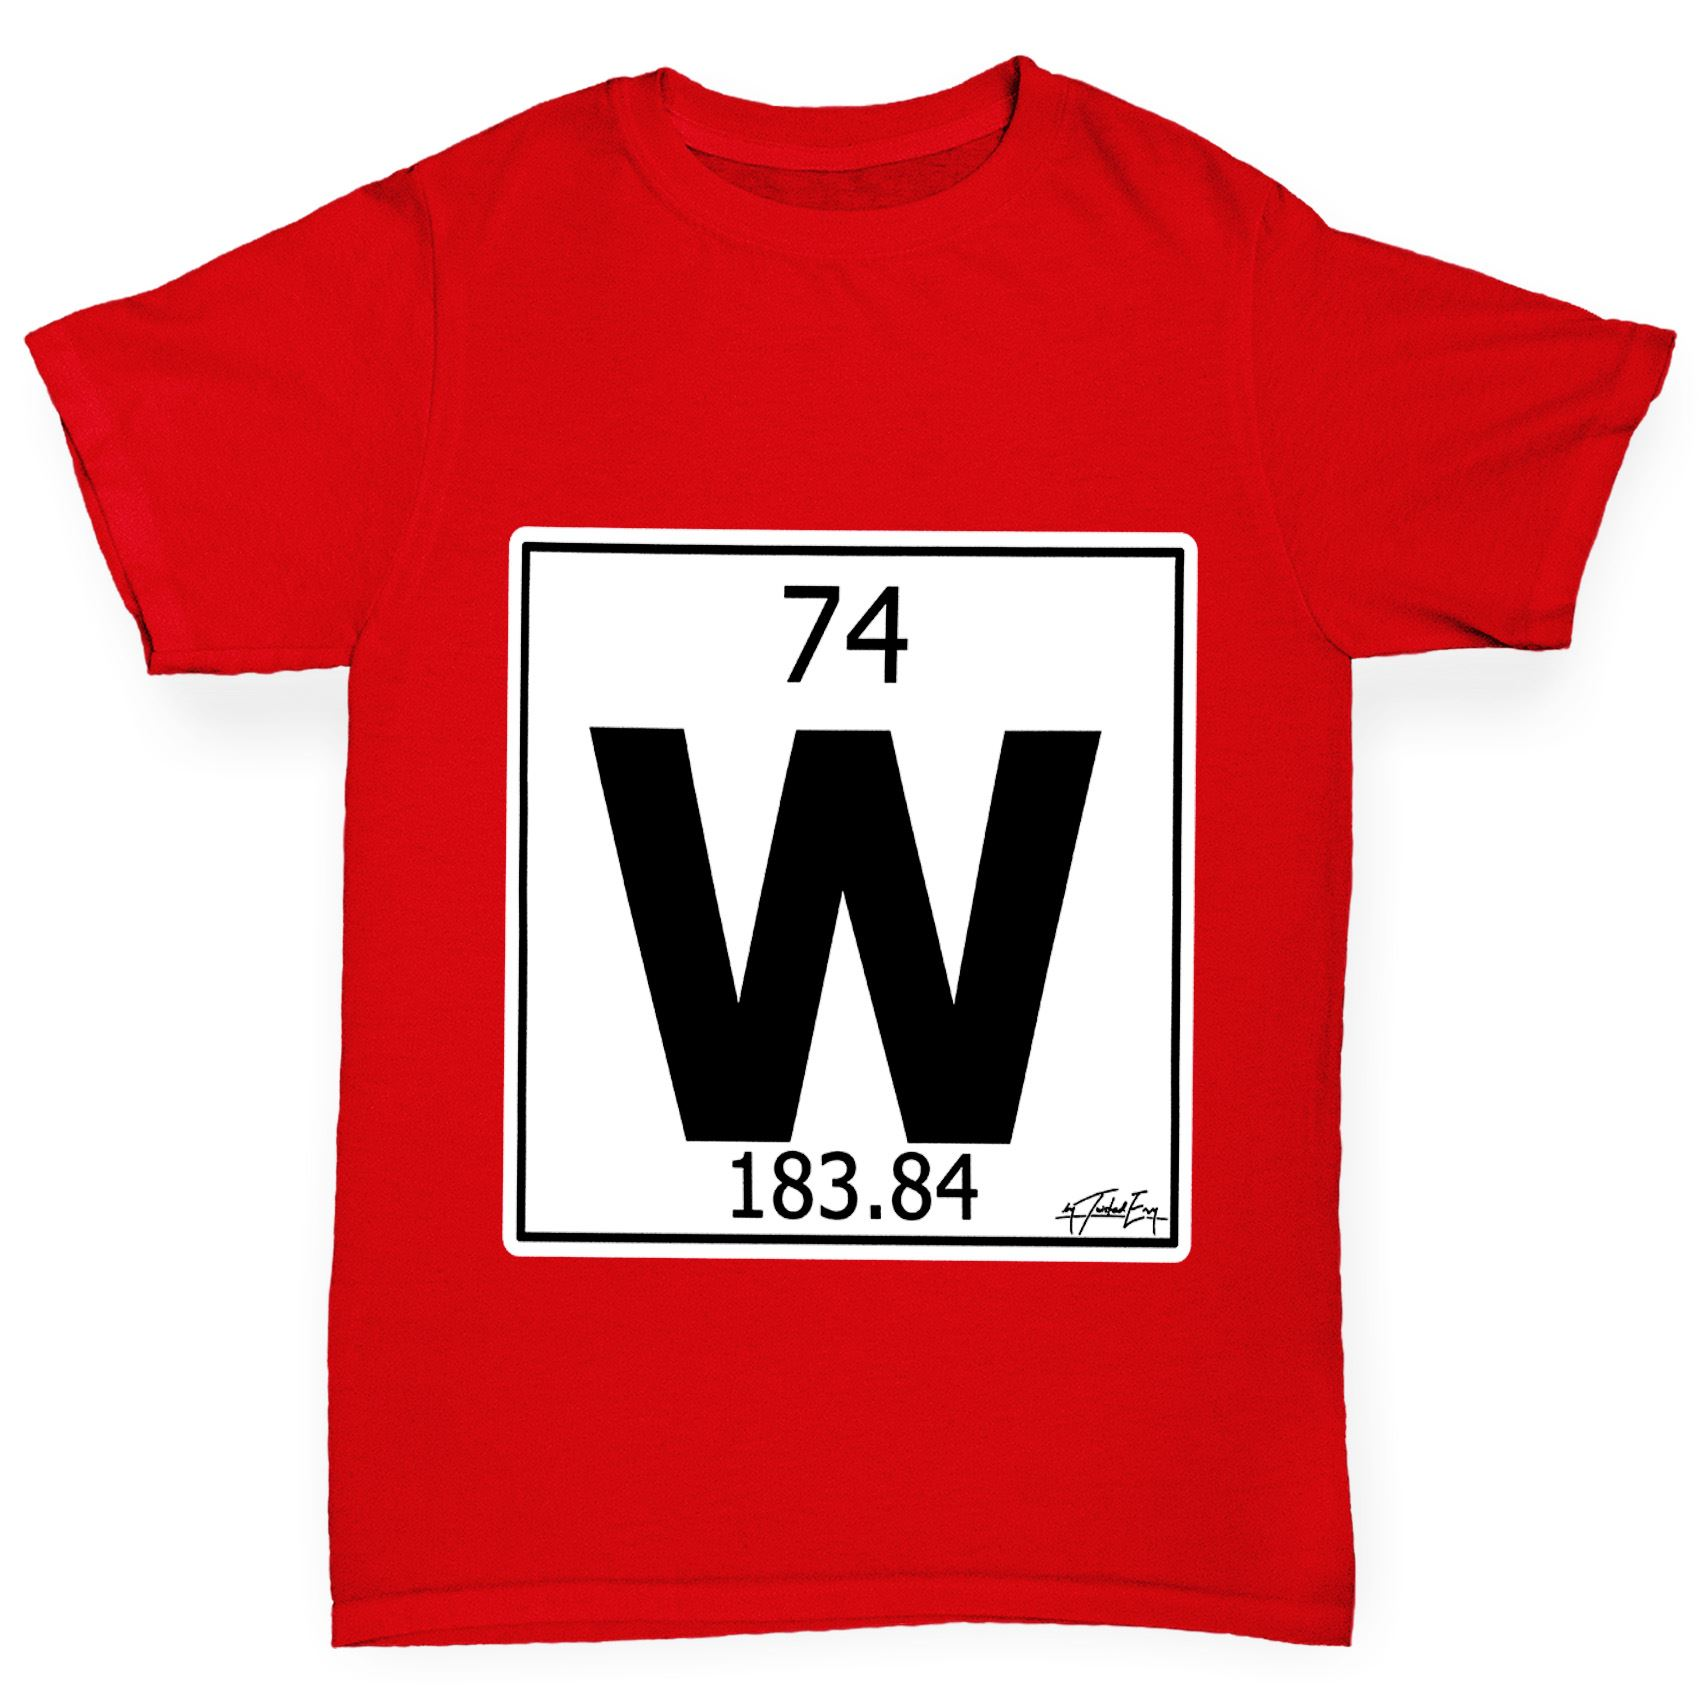 Twisted envy boys periodic table element w tungsten t shirt ebay twisted envy boy 039 s periodic table element urtaz Image collections